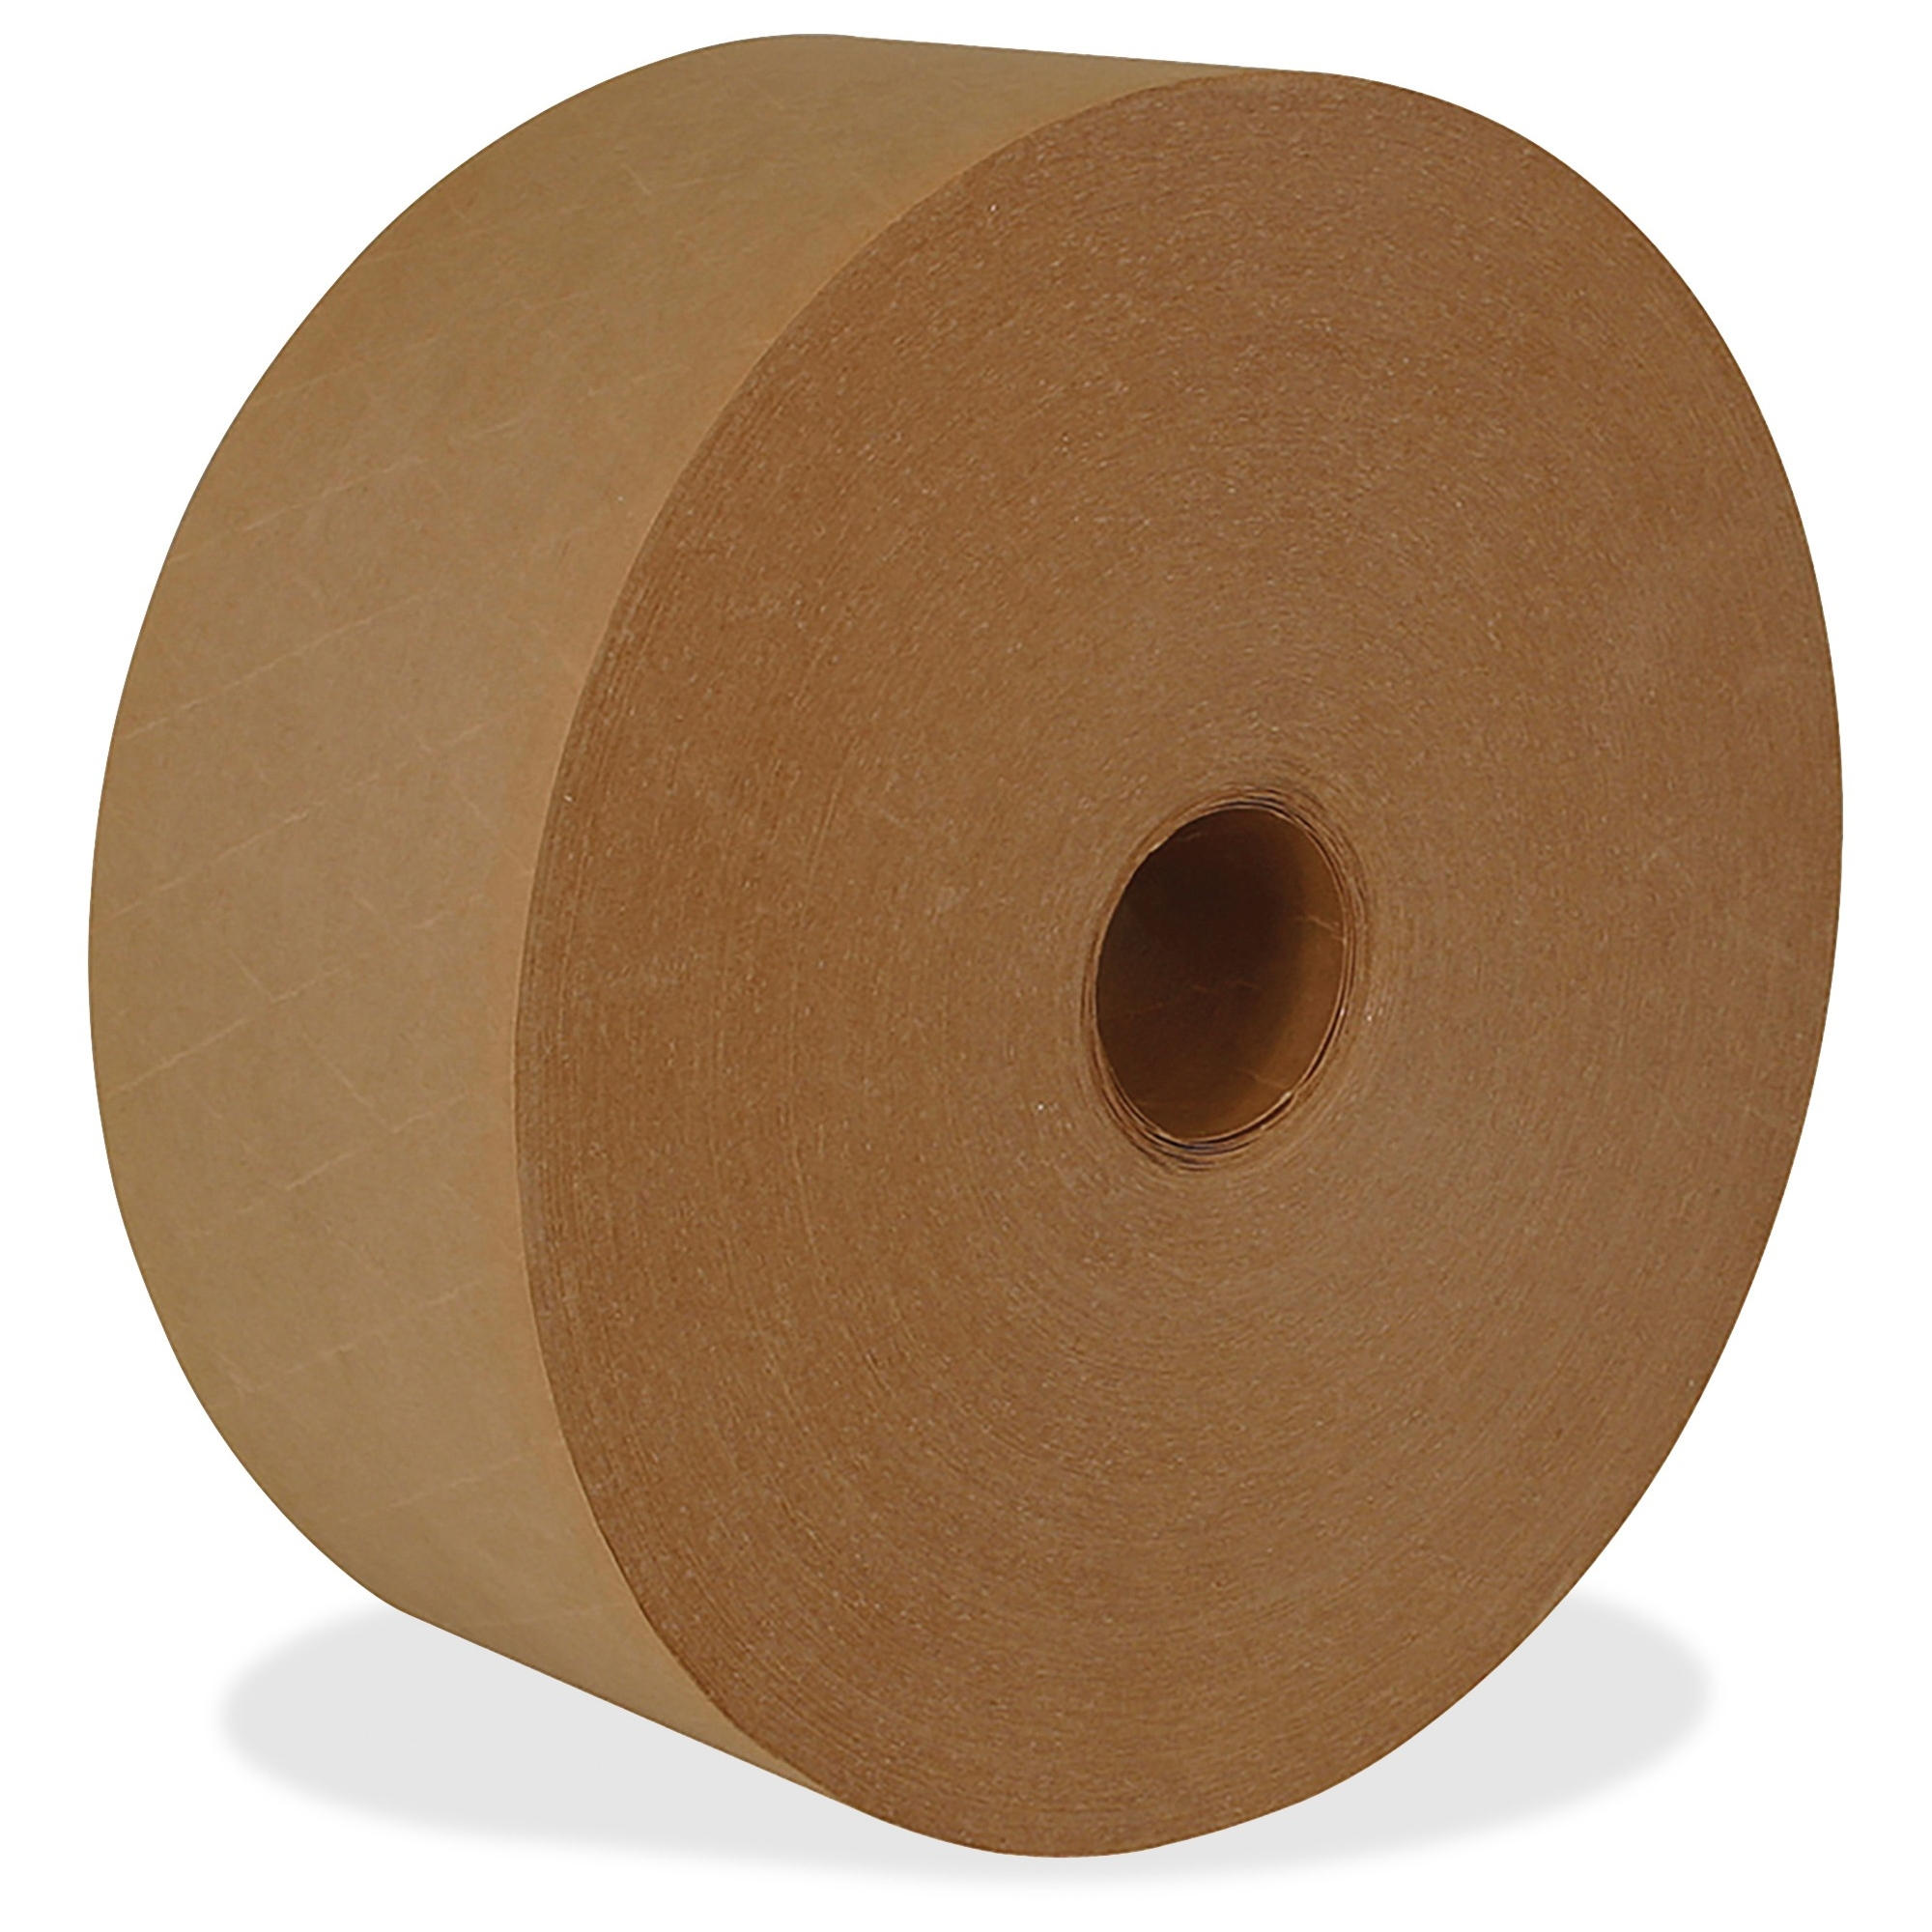 """Ipg Med-duty Water-activated Tape - 2.83"""" Width X 125 Yd Length - Medium Duty, Tamper Evident, Durable - 8 / Carton - Natural (k7004)"""